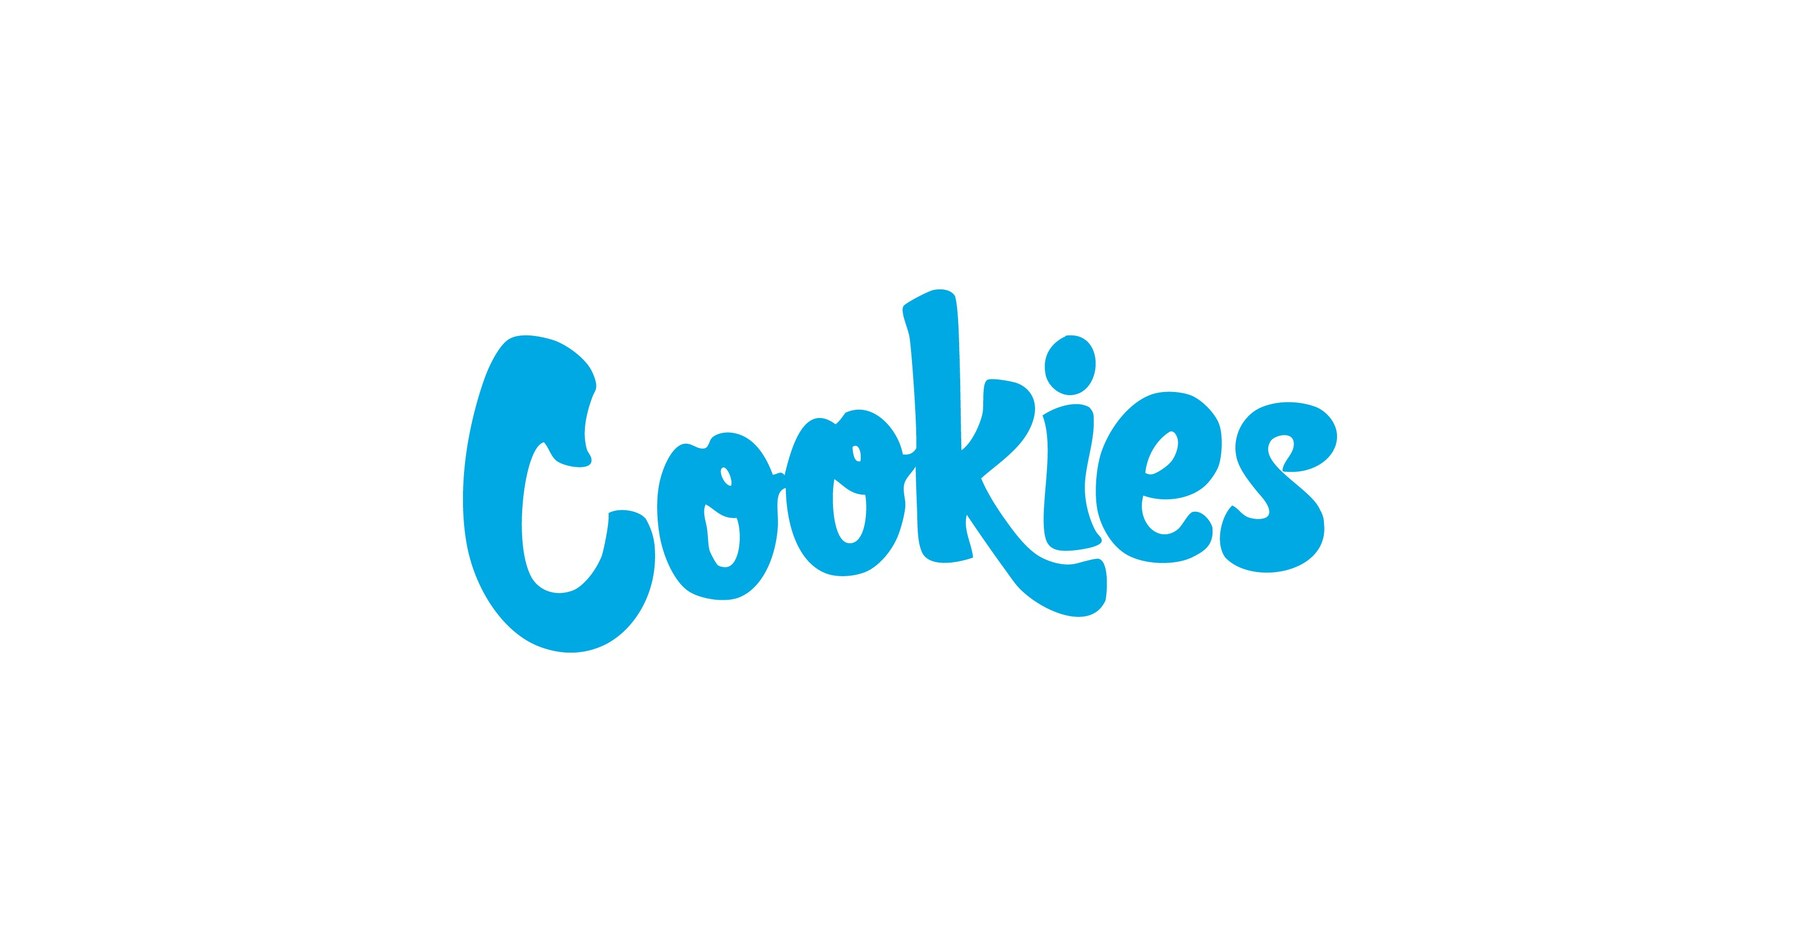 california based lifestyle cannabis brand cookies announces partnership with culta california based lifestyle cannabis brand cookies announces partnership with culta